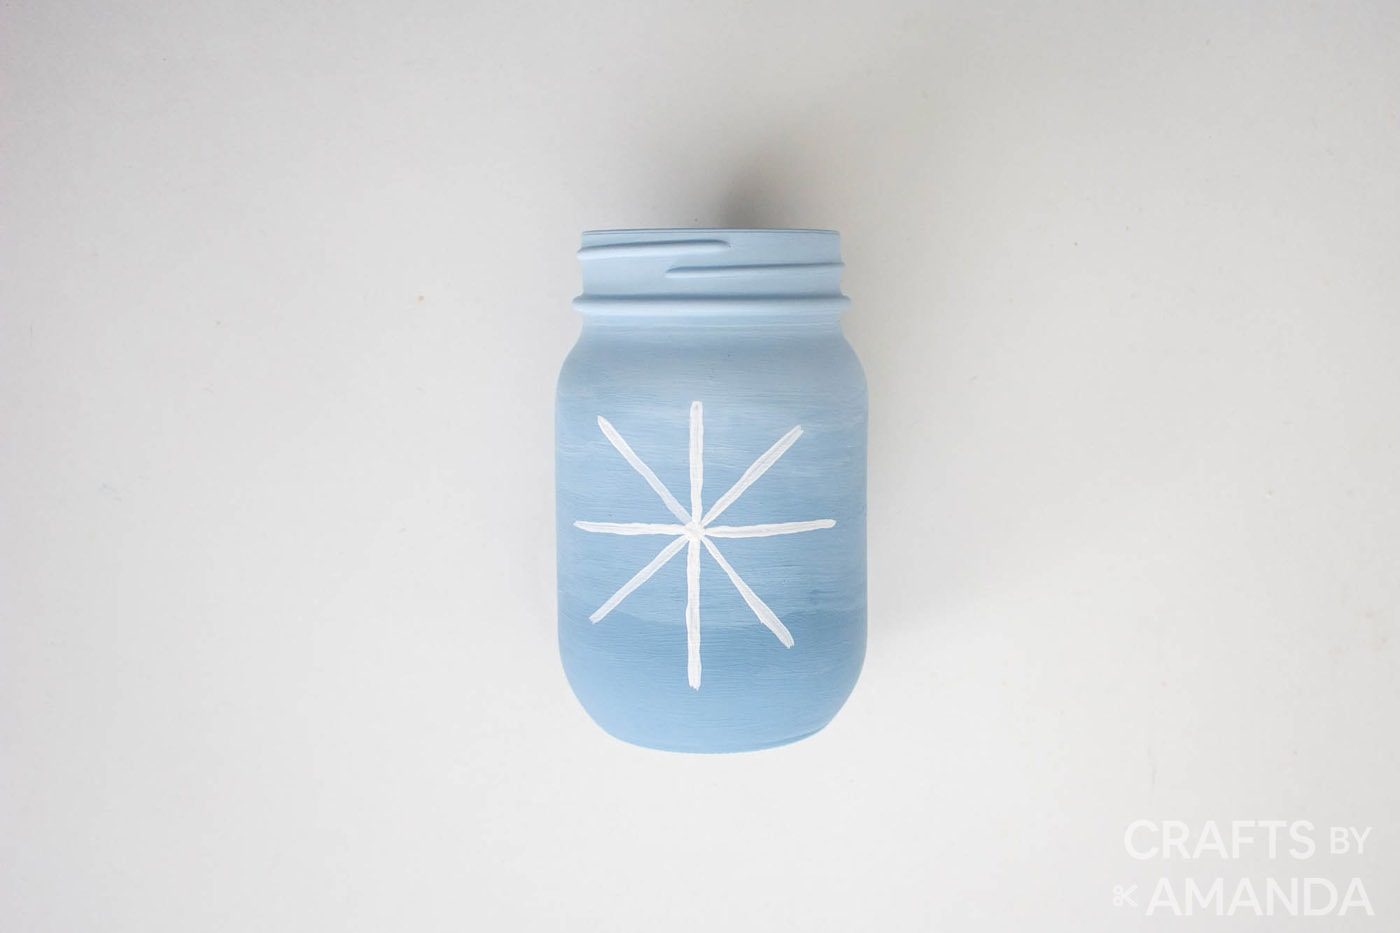 x shape added to cross on jar